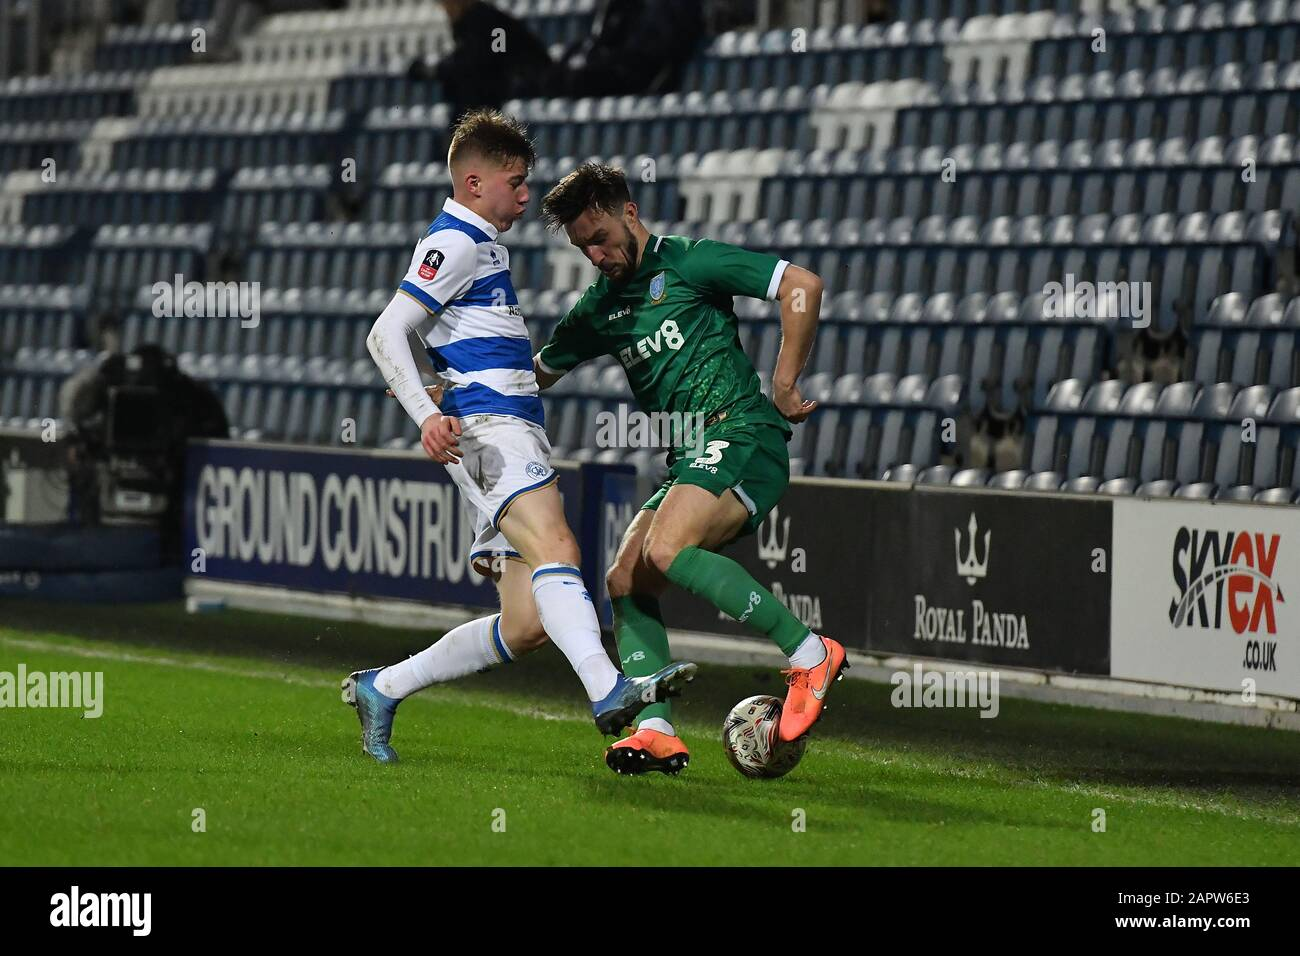 London, UK. 24th Jan 2020. during the FA Cup 4th Round match between Queens Park Rangers and Sheffield Wednesday at Kiyan Prince Foundation Stadium, London on Friday 24th January 2020. (Credit: Ivan Yordanov   MI News)Photograph may only be used for newspaper and/or magazine editorial purposes, license required for commercial use Credit: MI News & Sport /Alamy Live News Stock Photo